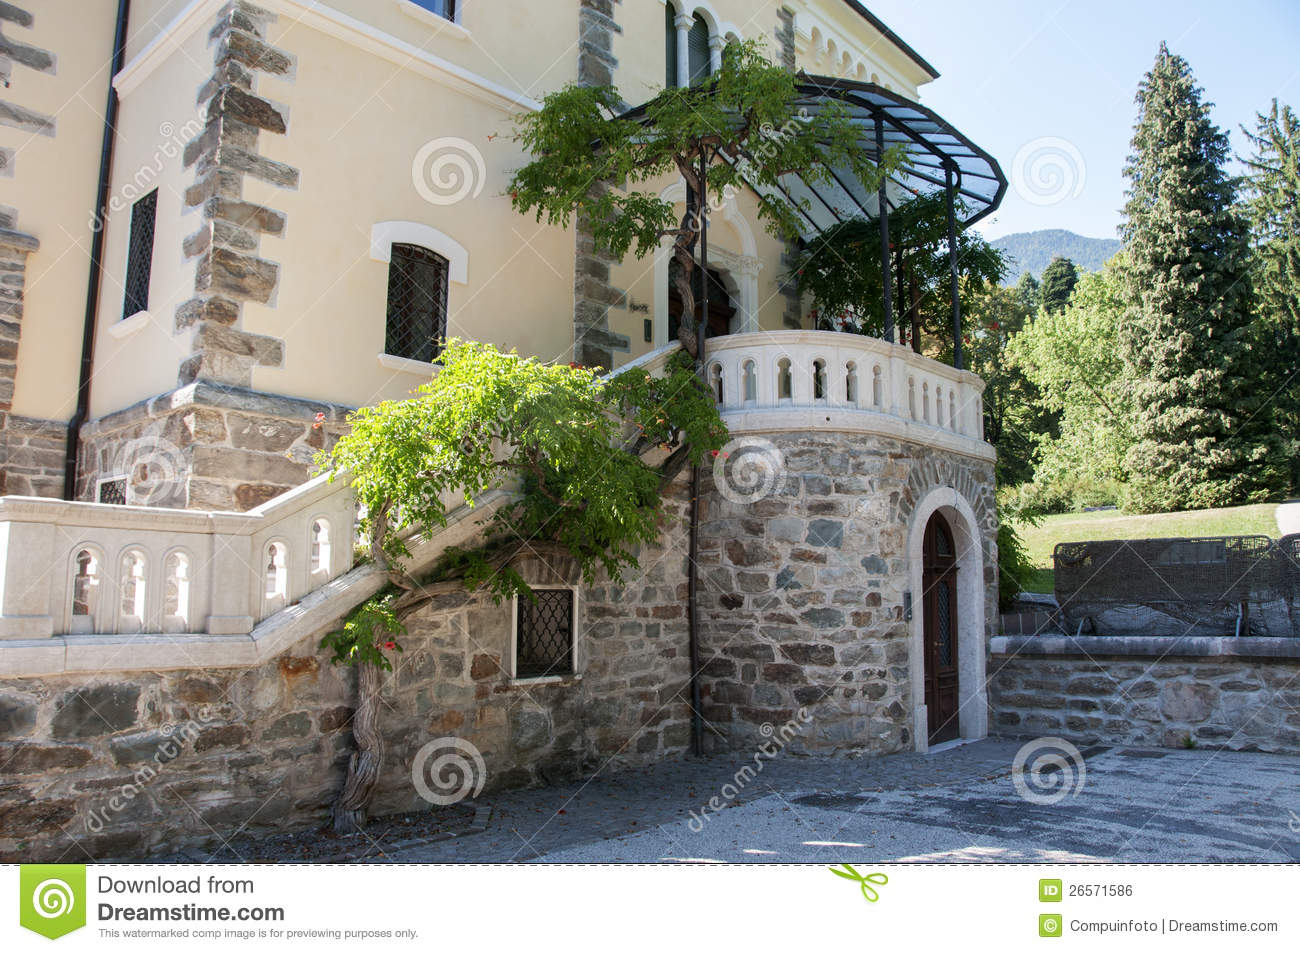 Big Building In Italy In The Place Levico Terme Royalty